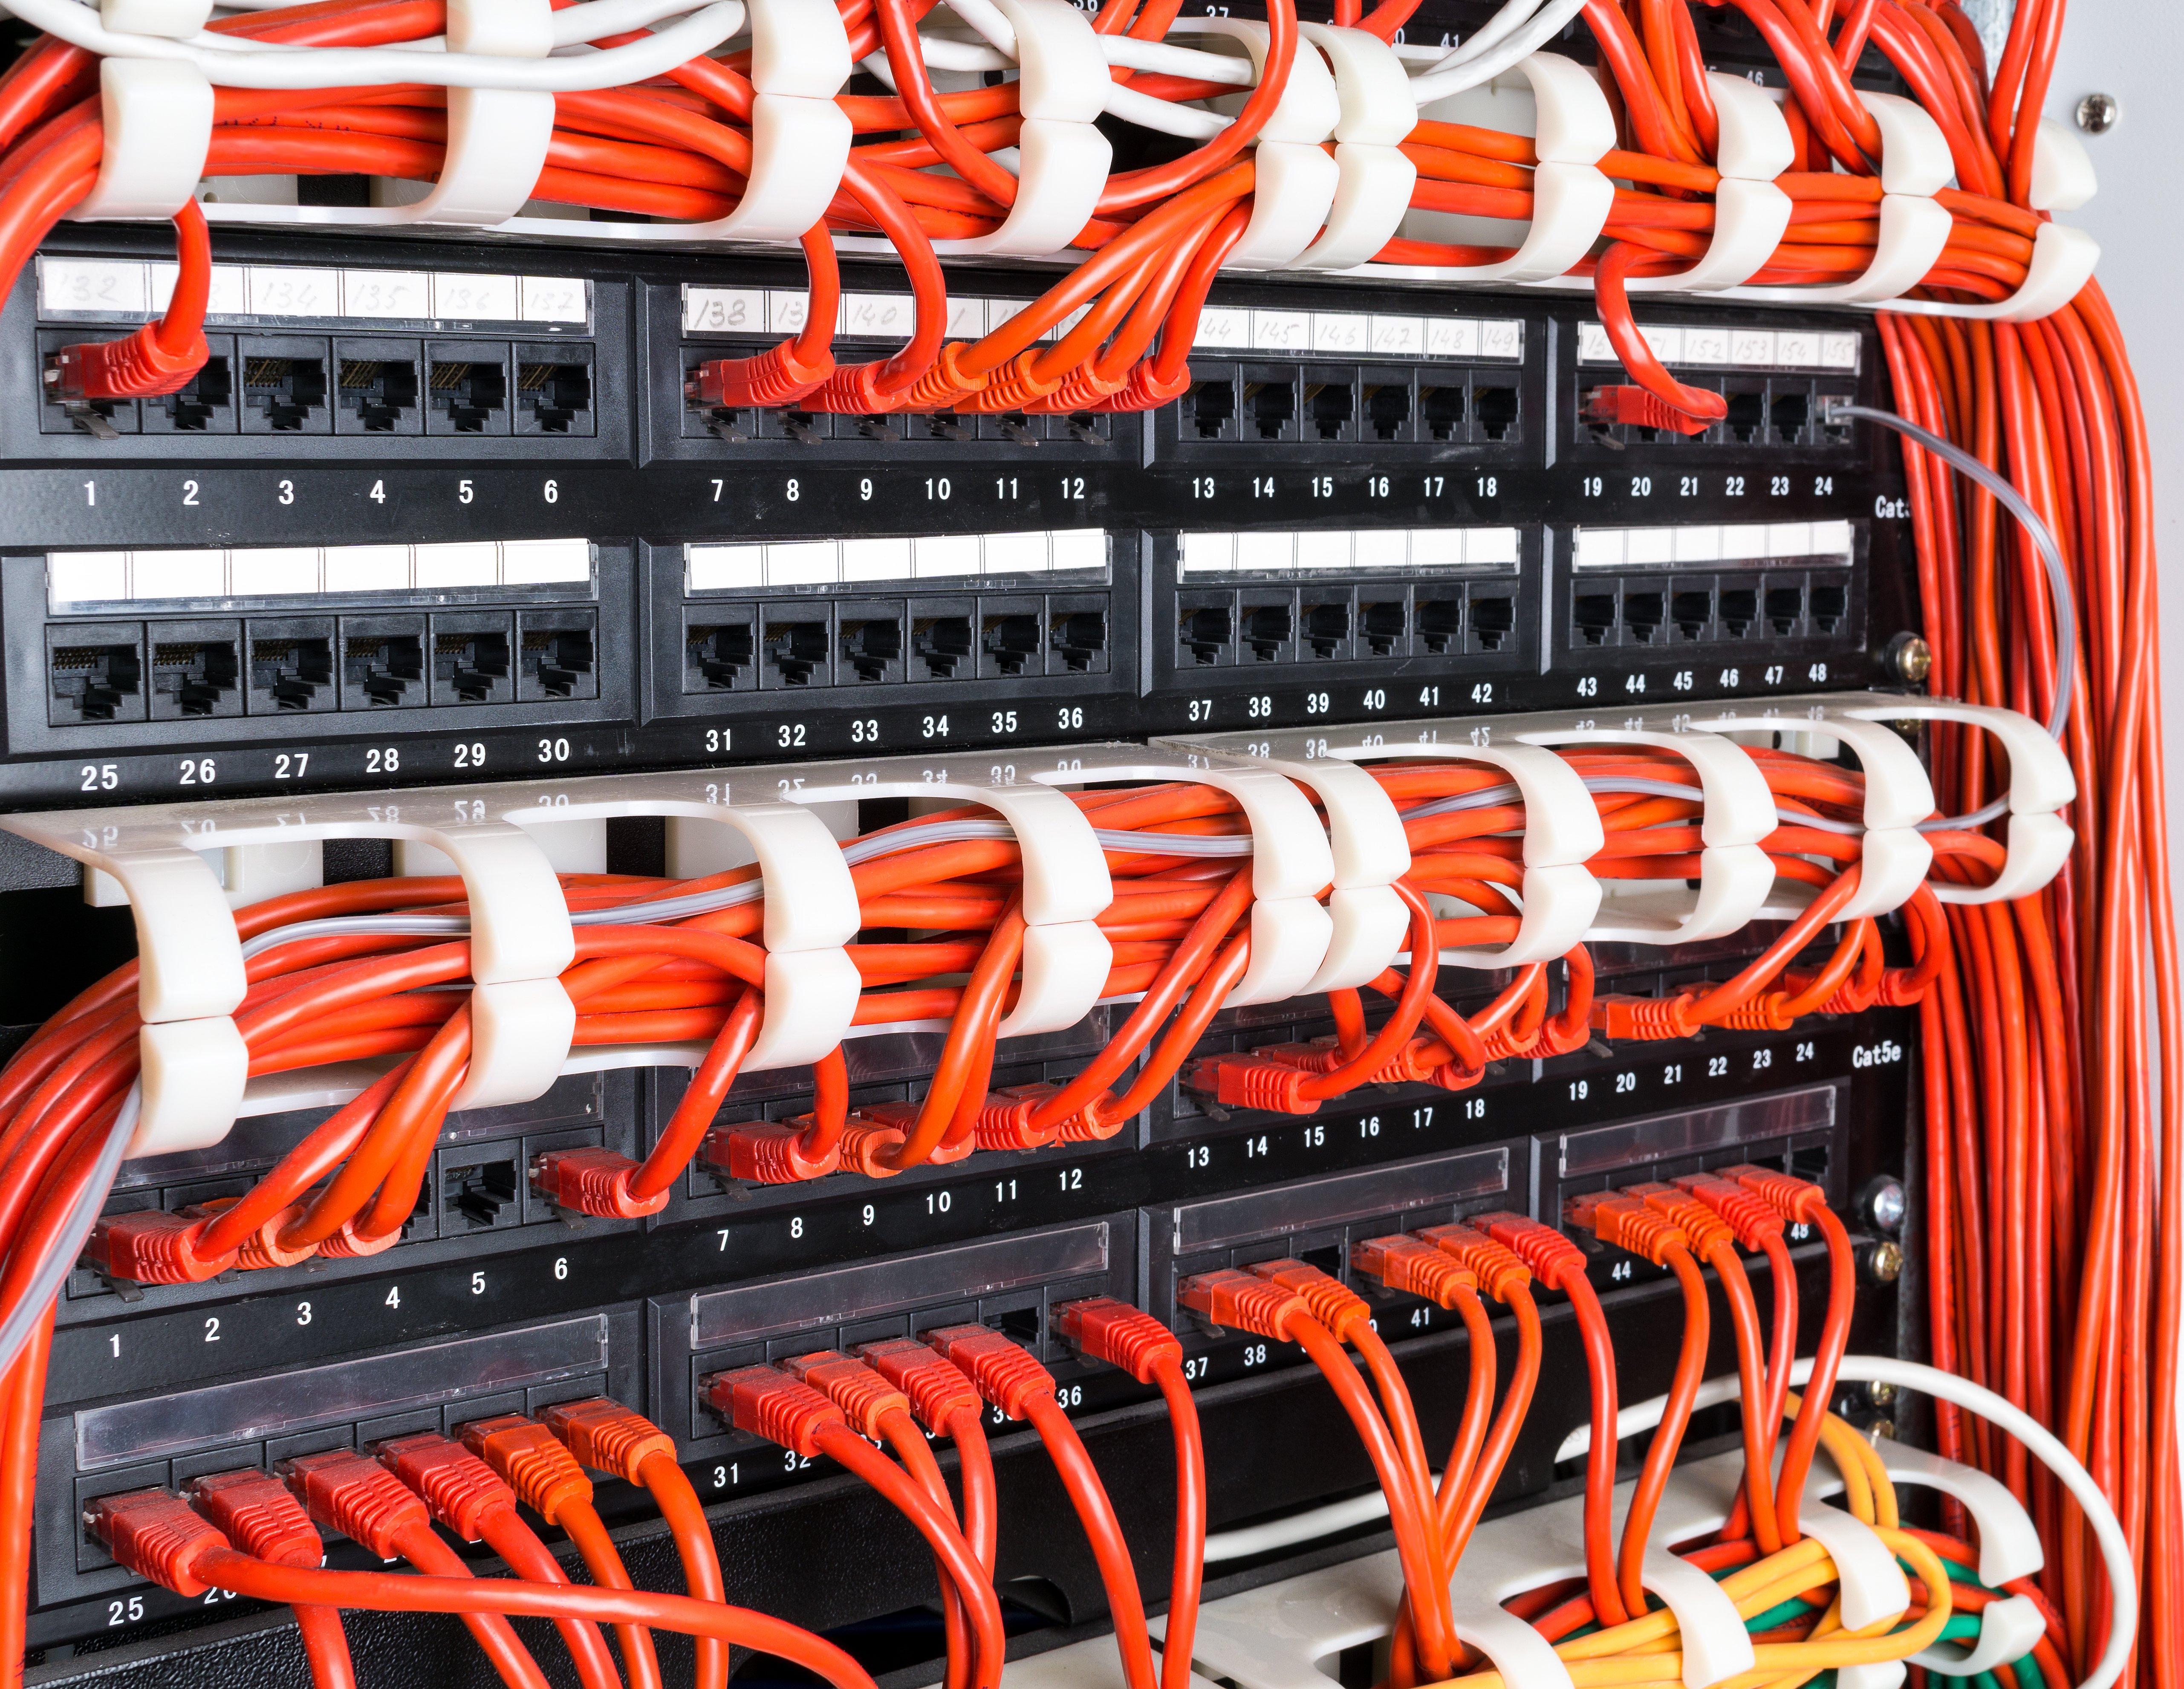 Wiring Install Ethernet Cat 5 Cat 6 Patch Panel Network Cable